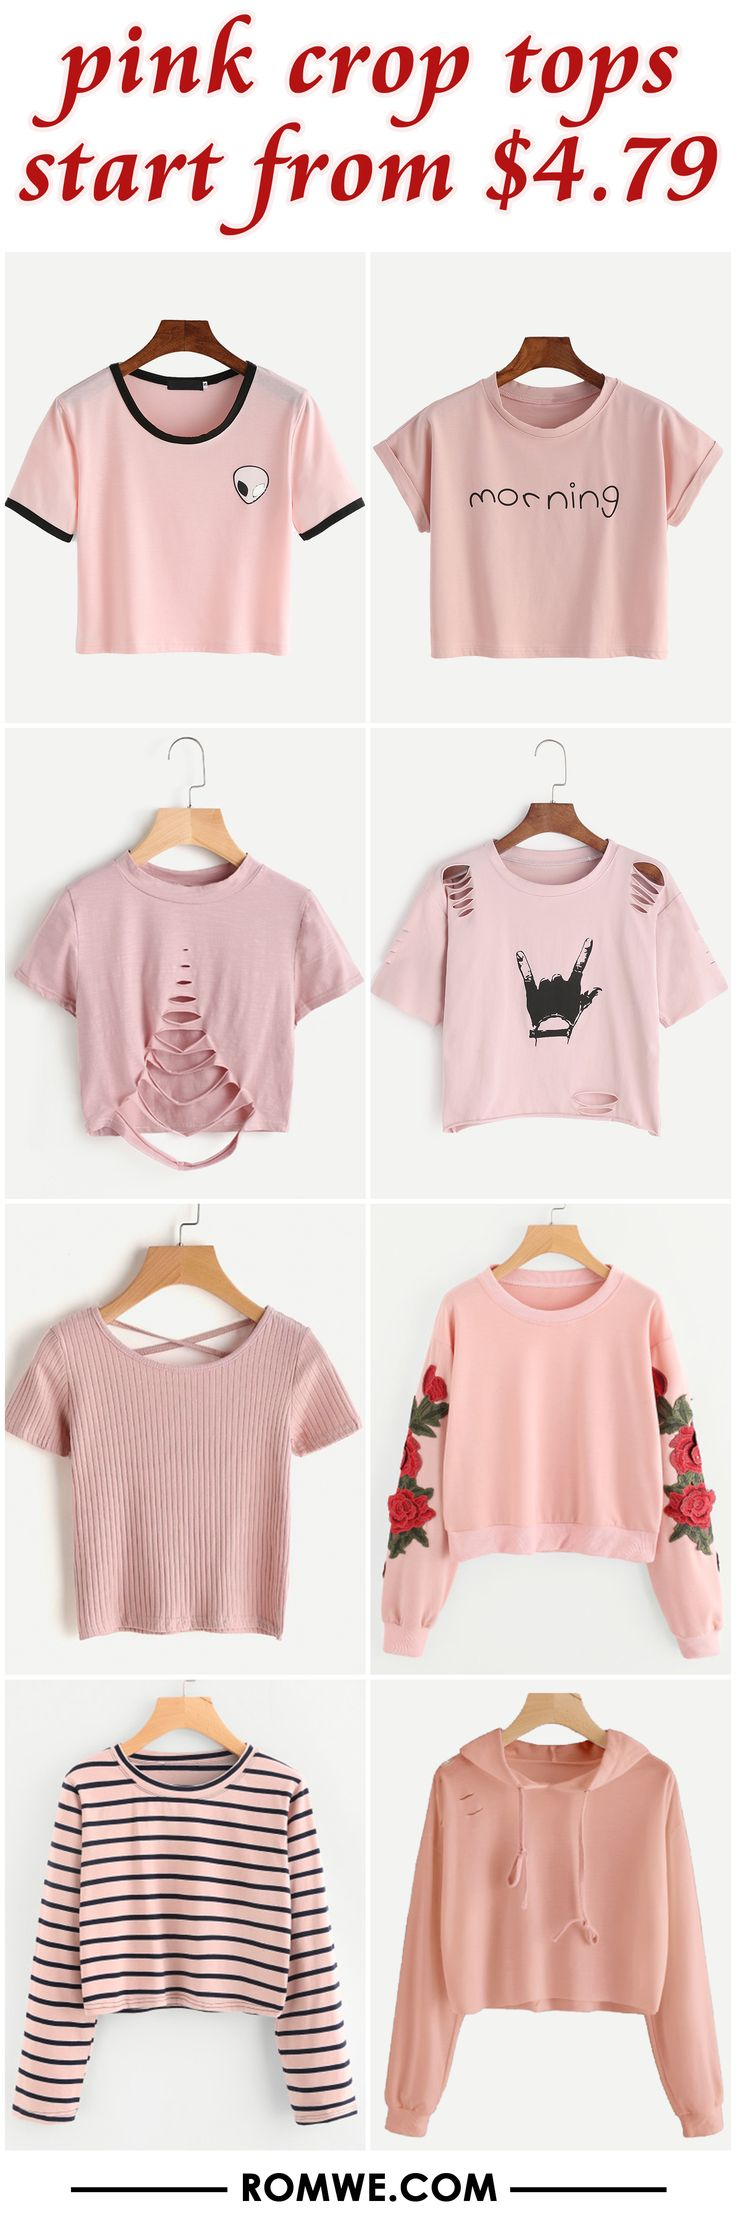 pink crop tops from $4.79